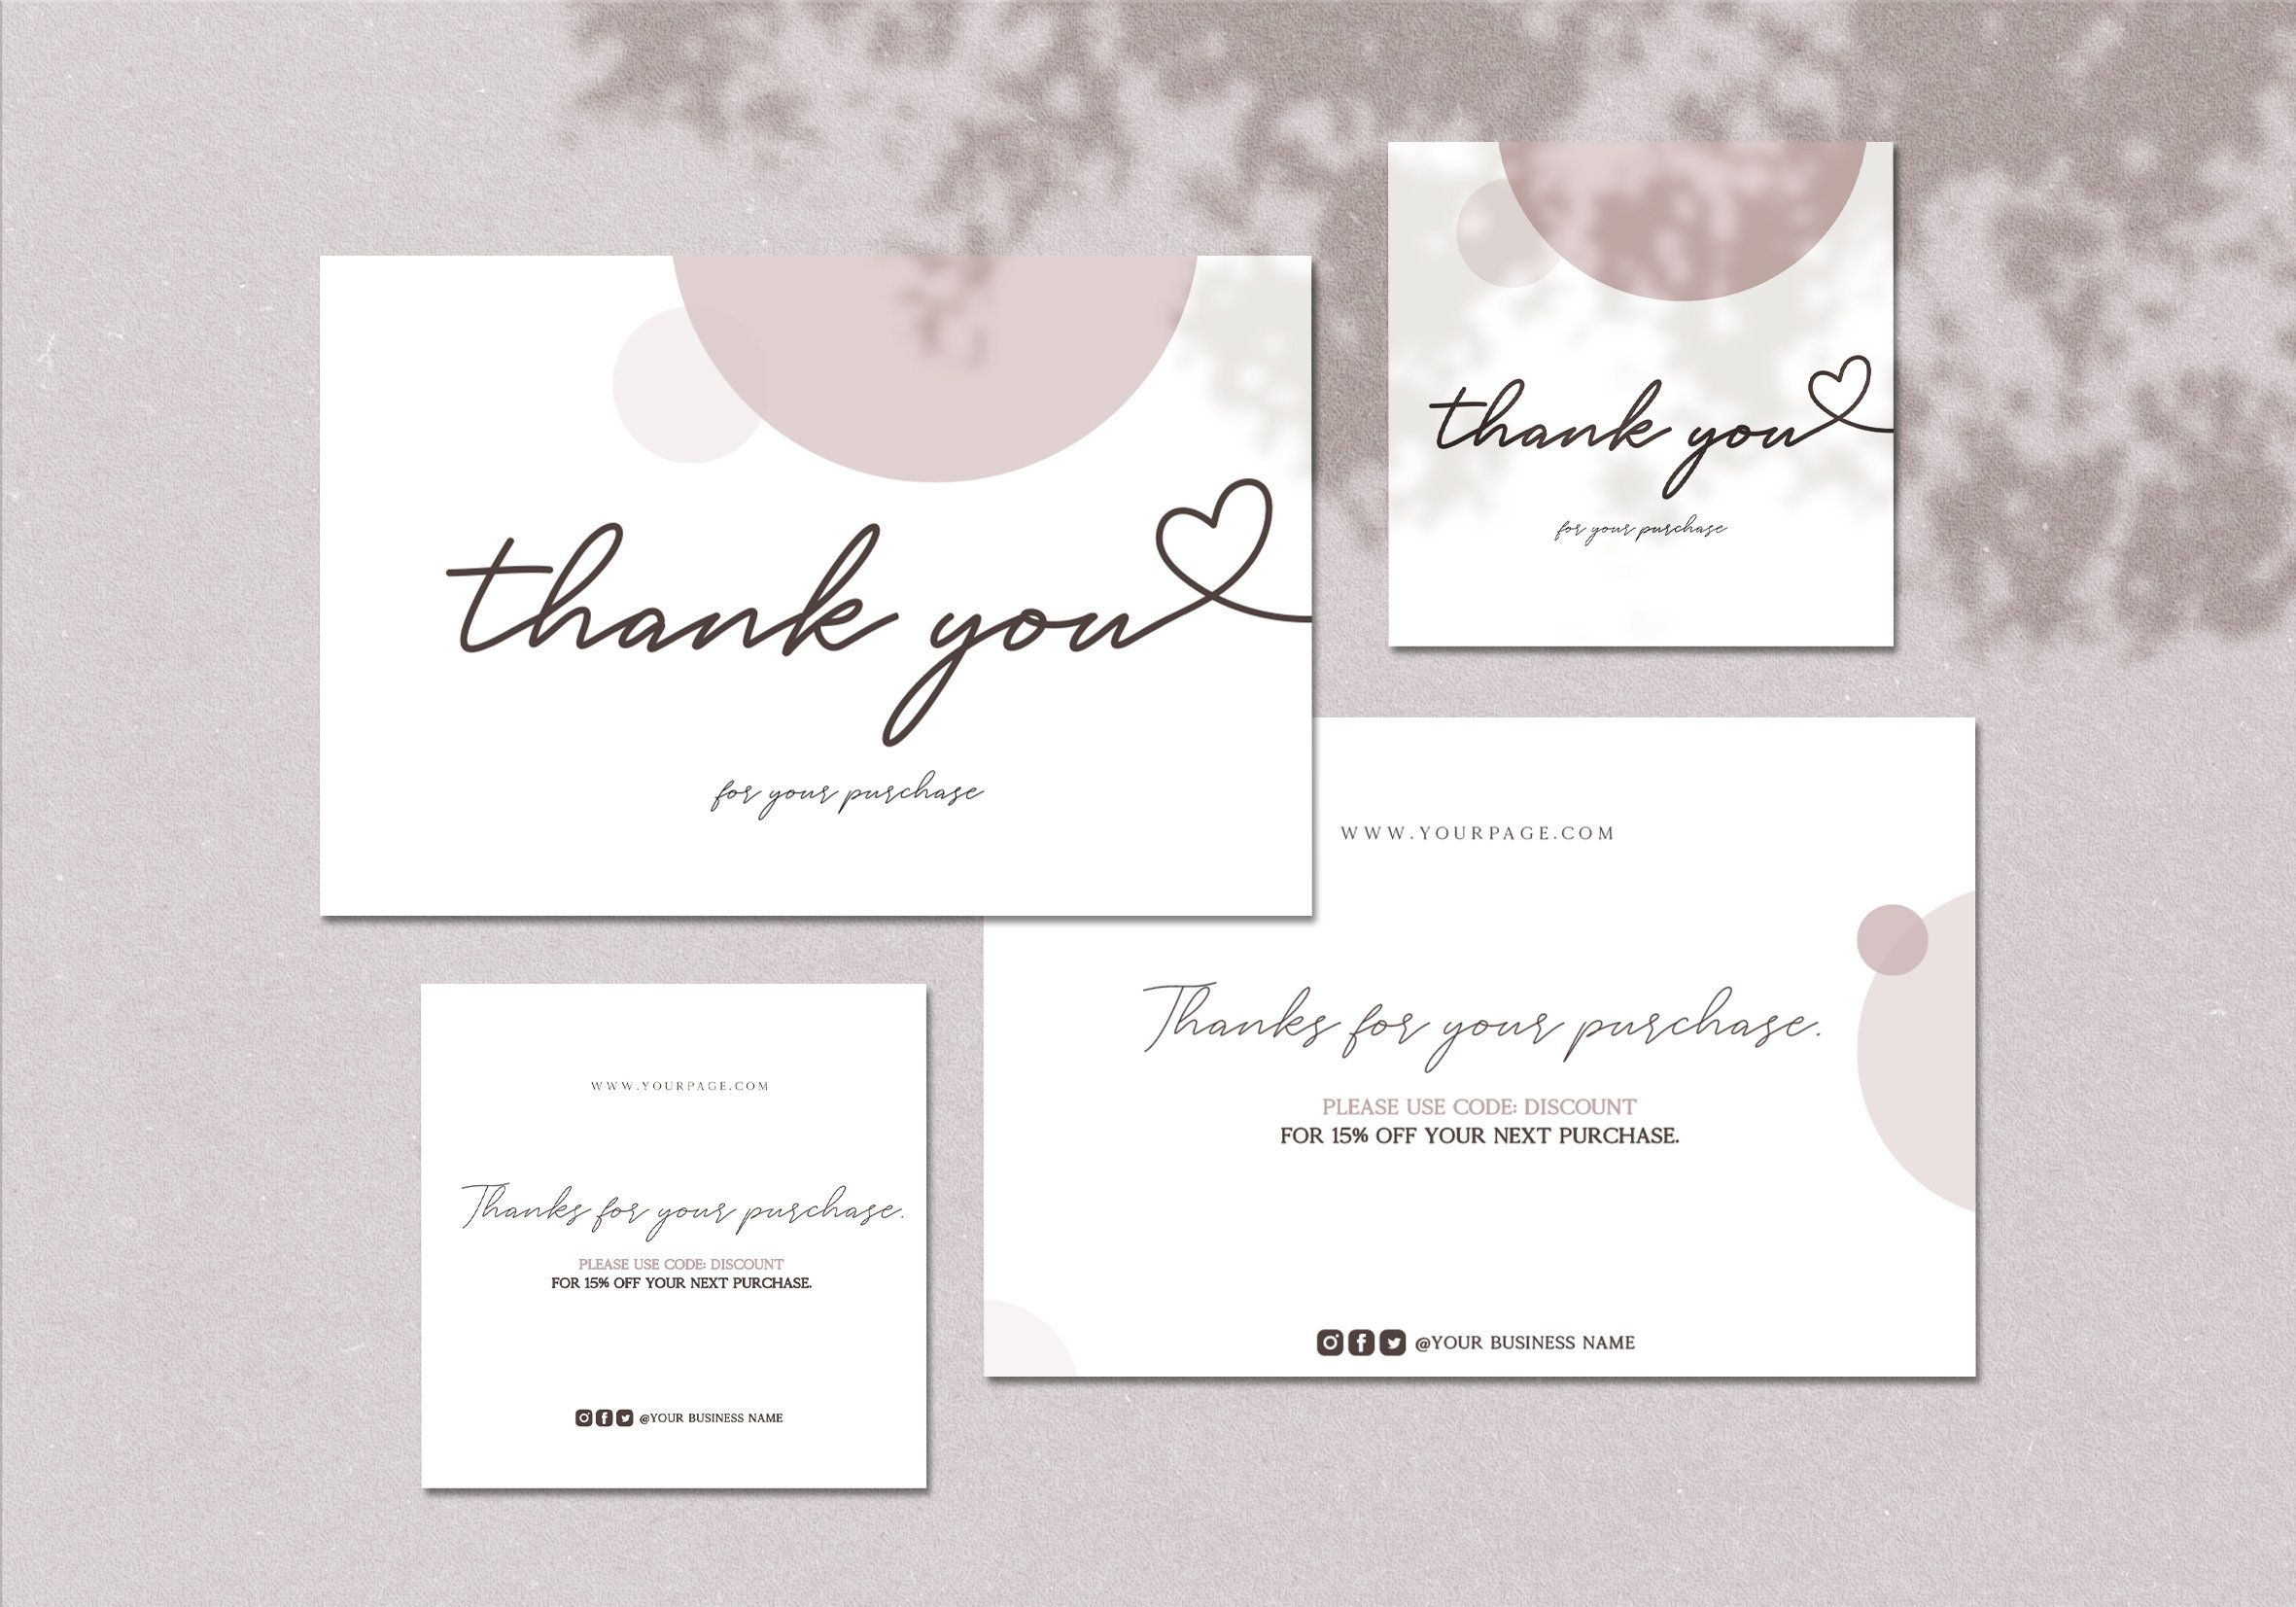 Editable Thank You Card Packaging Inserts 4x6 3x3 Thank You Card Stickers Etsy Packaging Order Insert Card Package Insert Small Business In 2021 Business Thank You Cards Etsy Packaging Thank You Cards